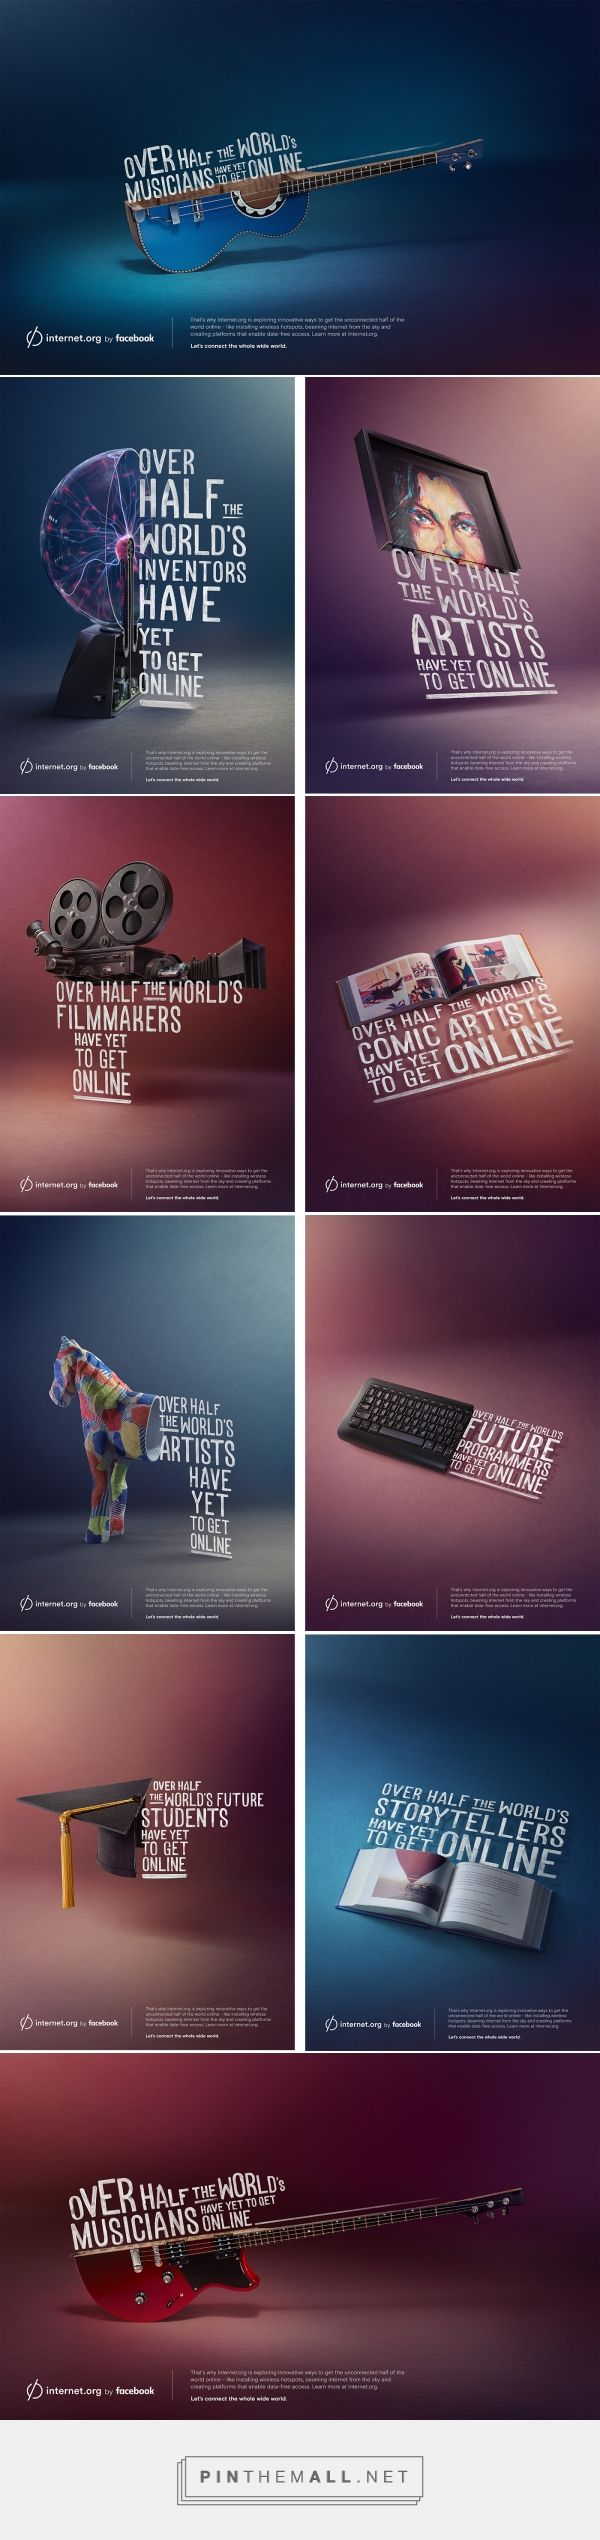 Internet.org by Facebook on Behance - created via https://pinthemall.net